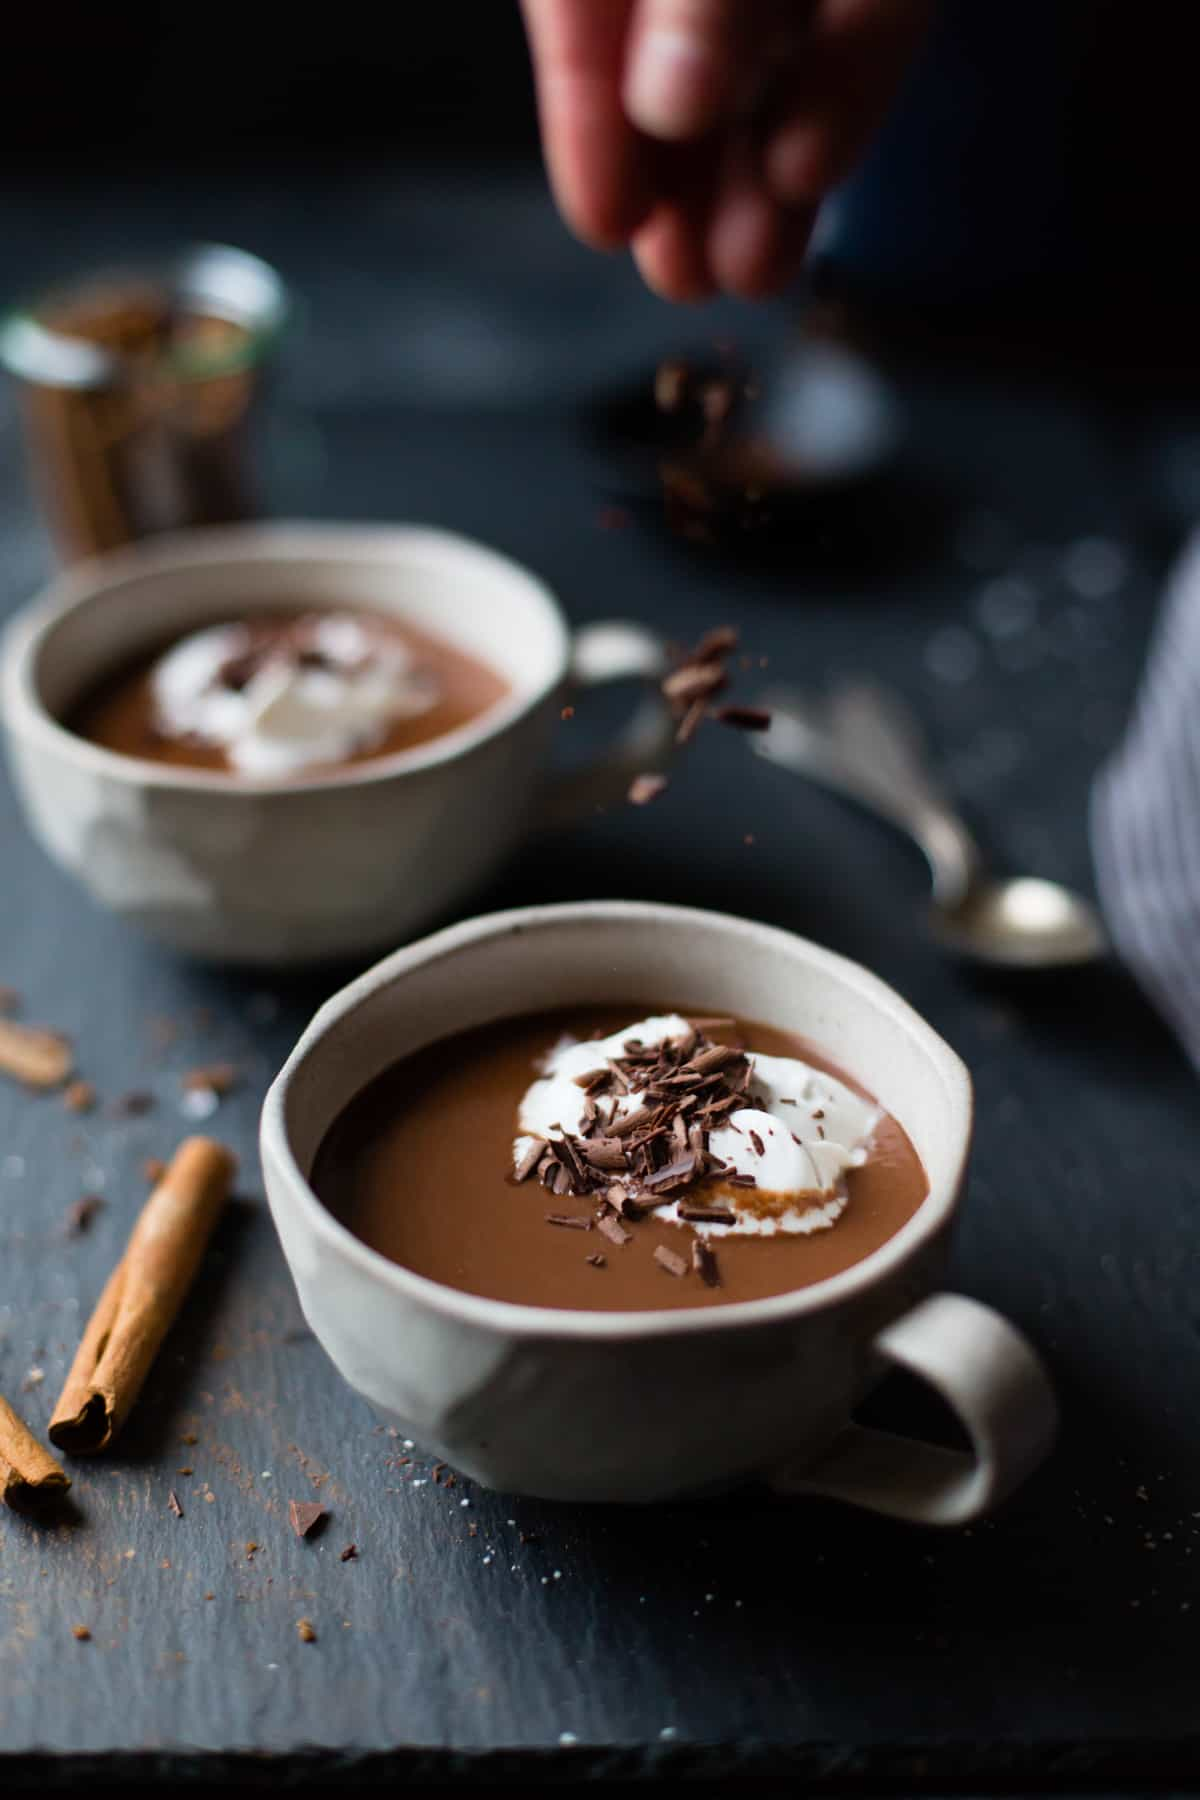 chocolate sprinkled on Vegan Champurrado {Mexican Hot Chocolate Atole}